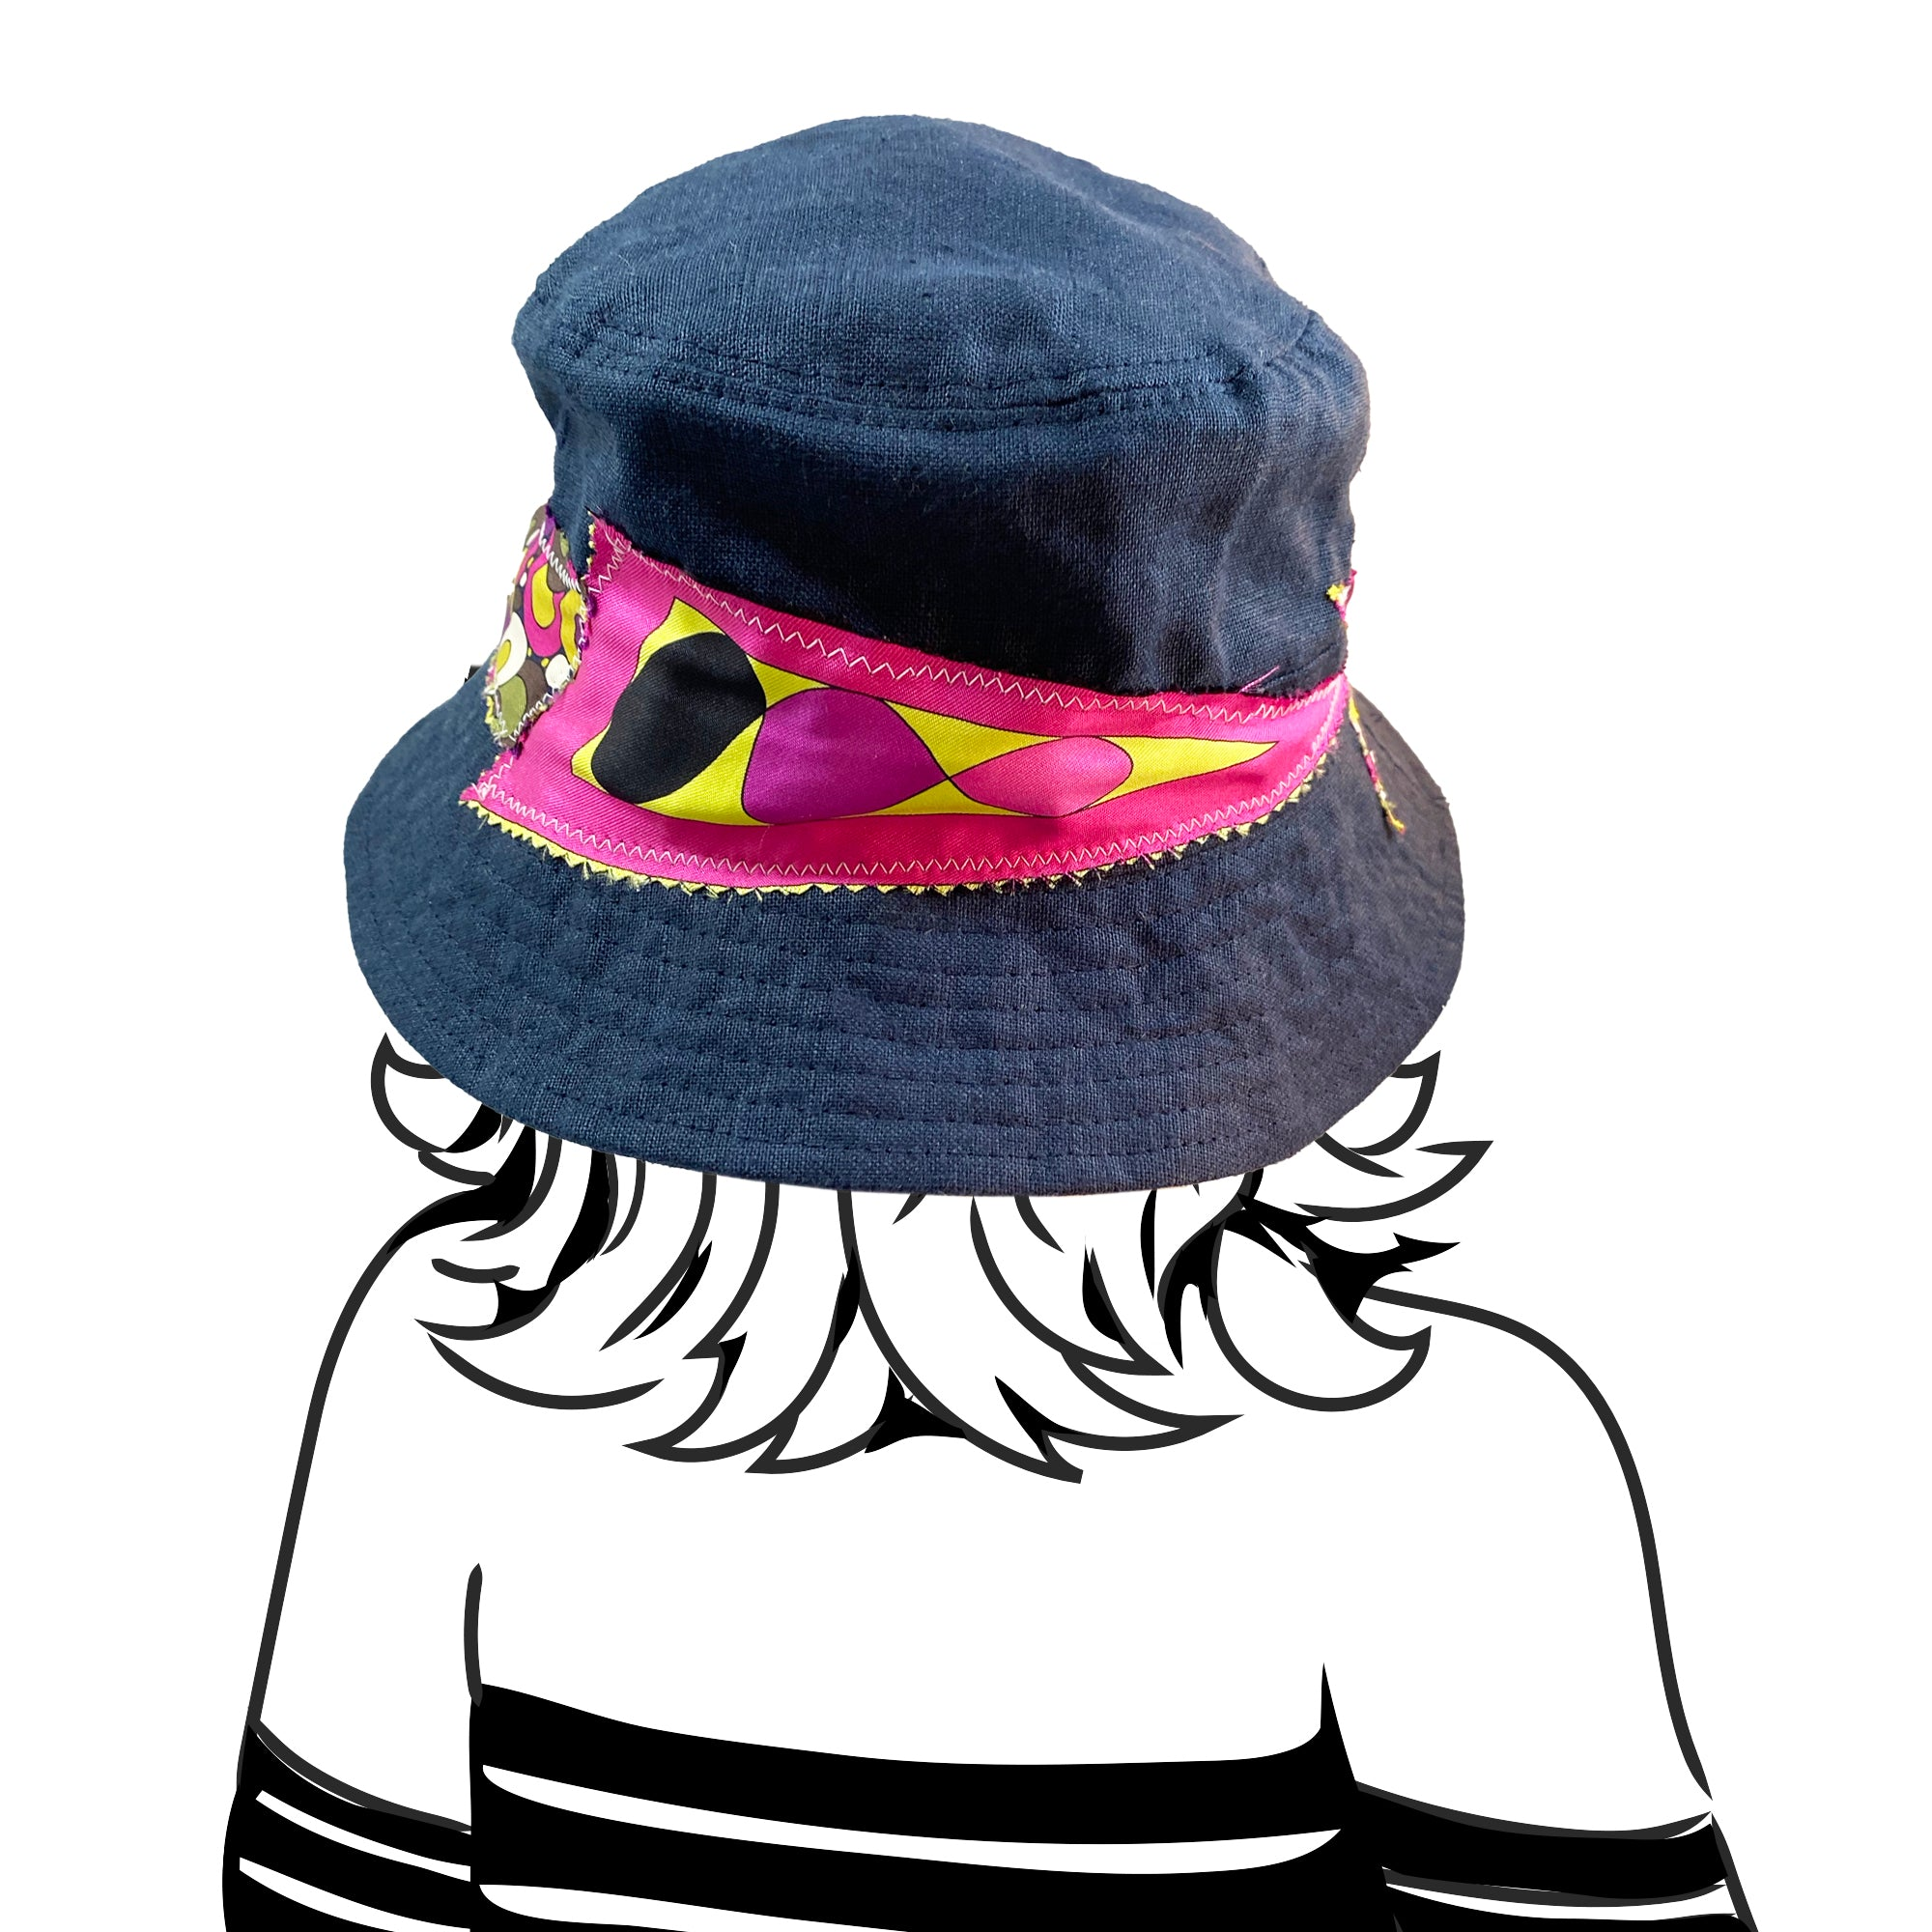 Bucket Hat - Navy Linen with Emilio Pucci Silk - XS/S